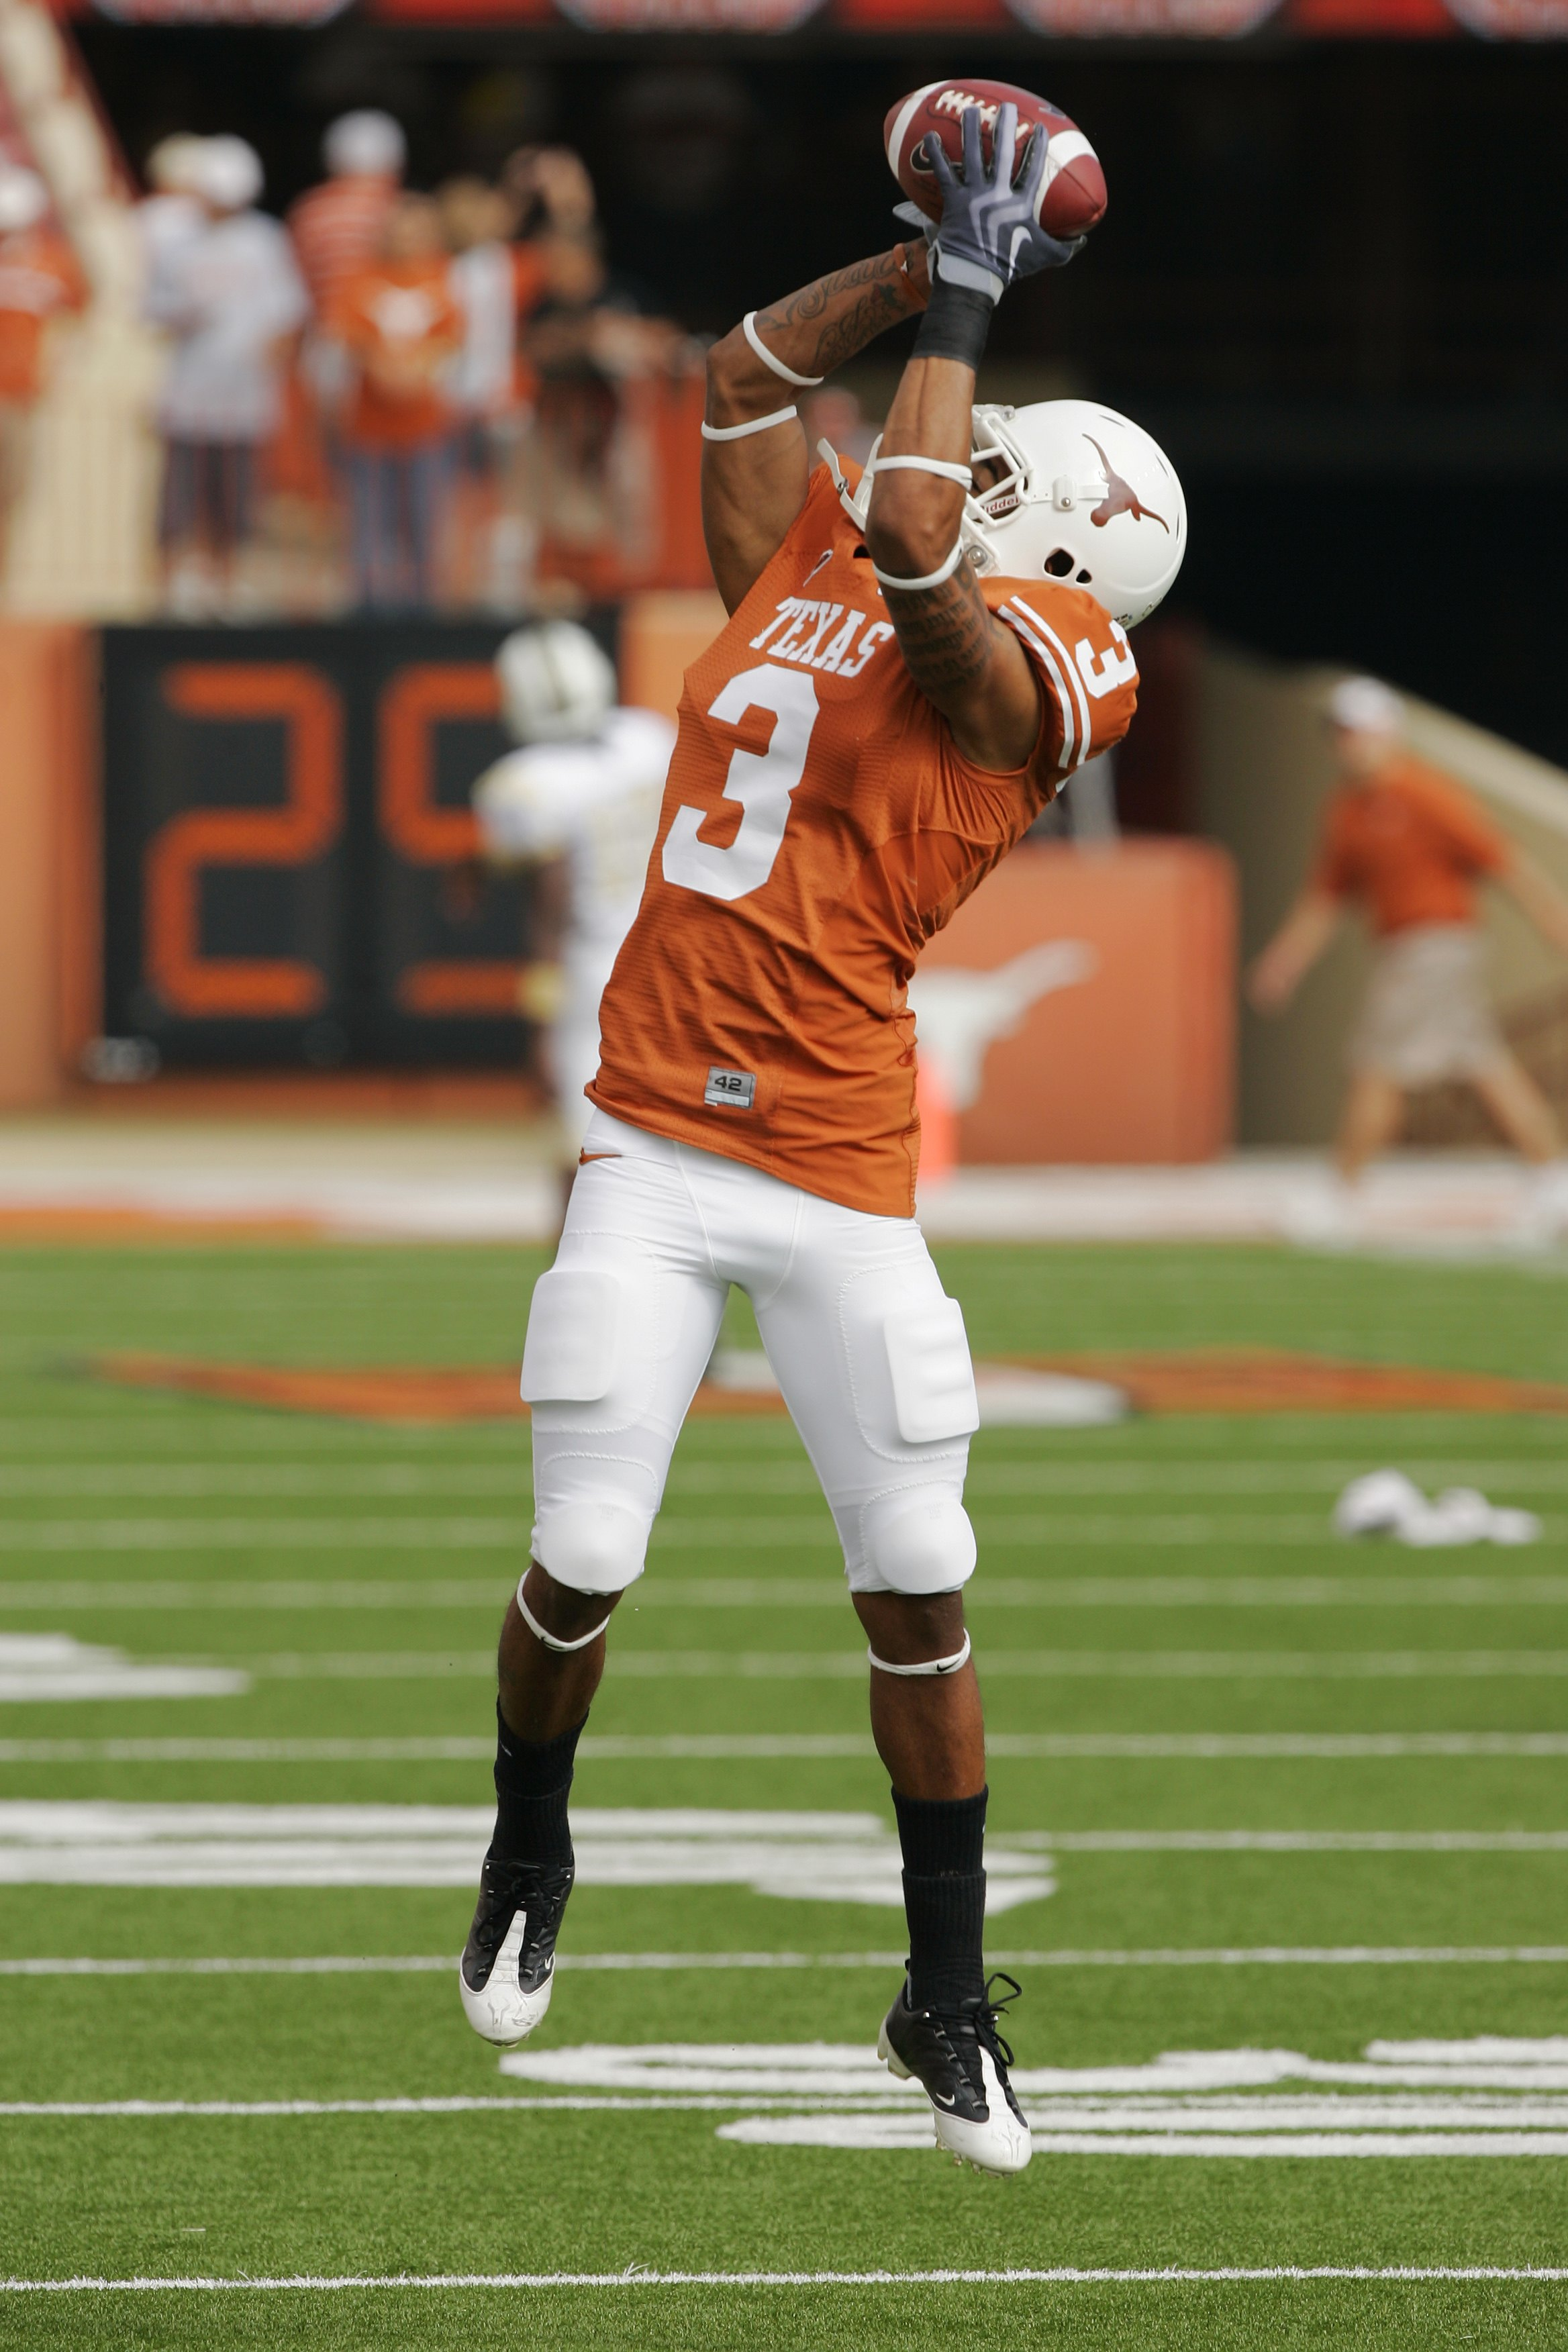 AUSTIN, TX - NOVEMBER 07:  Cornerback Curtis Brown #3 of the Texas Longhorns practices before a game against the UCF Knights on November 7, 2009 at Darrell K Royal - Texas Memorial Stadium in Austin, Texas.  Texas won 35-3.  (Photo by Brian Bahr/Getty Ima